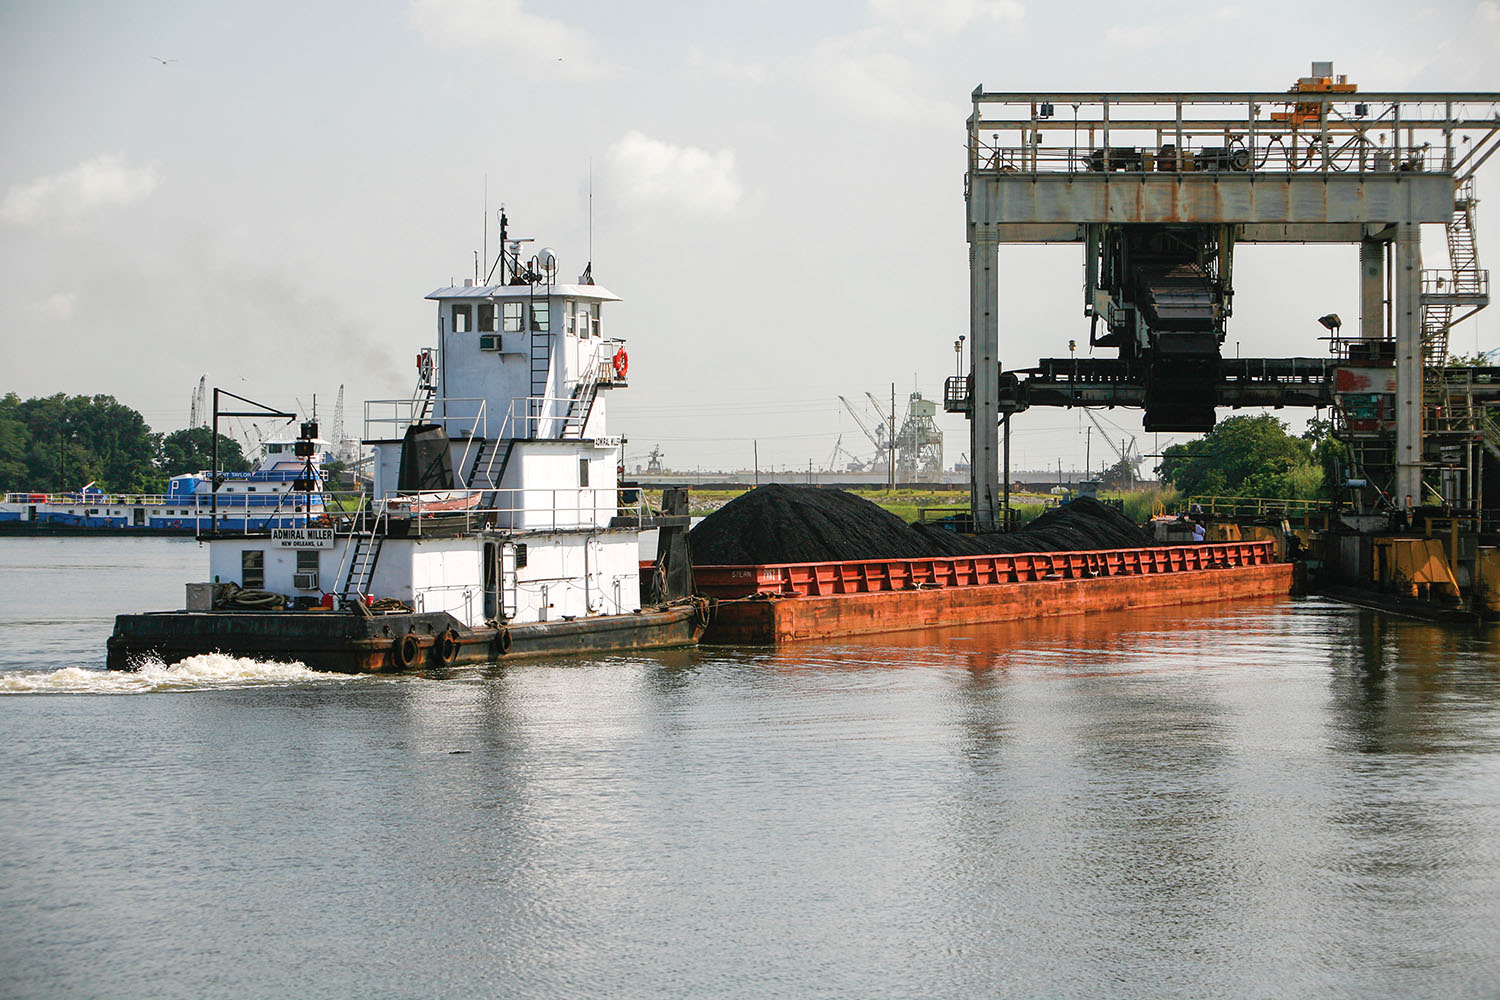 A towing vessel pushes a coal-laden barge into an unloader at the Port of Mobile's McDuffie Coal Terminal. (Photo courtesy of Alabama State Port Authority)